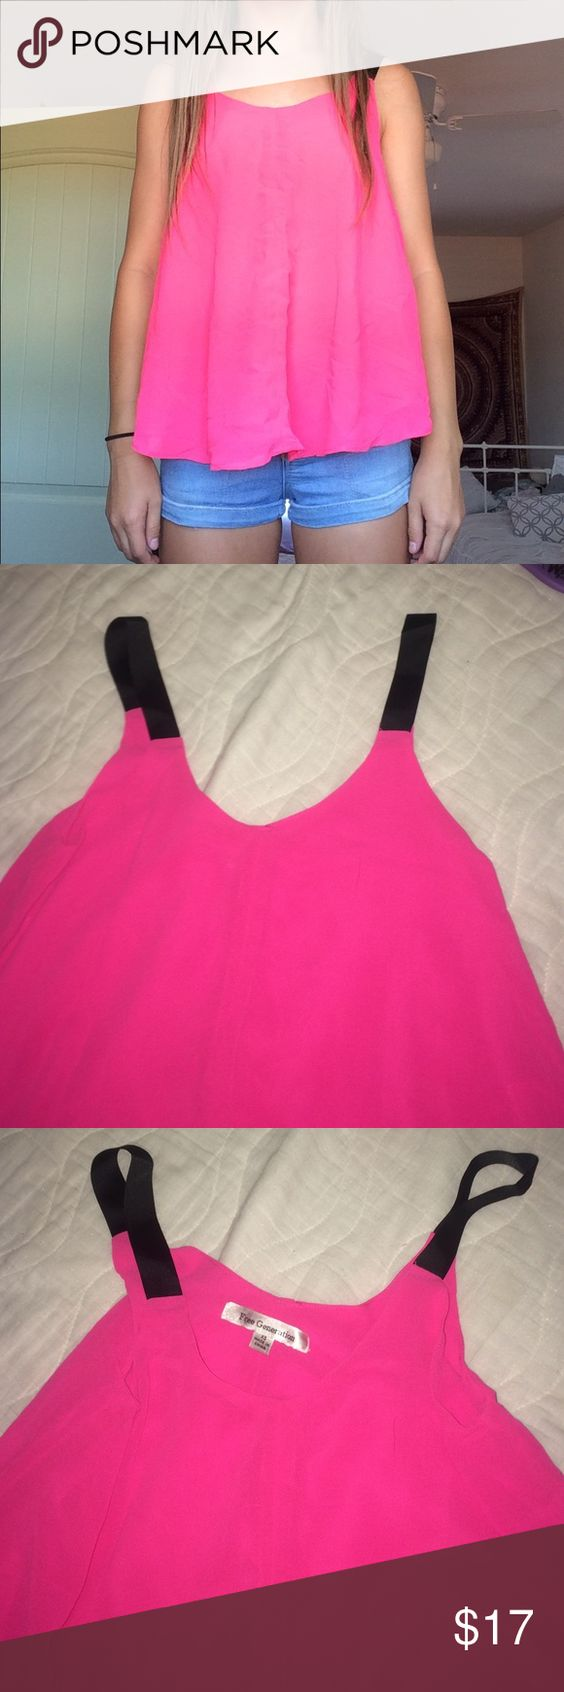 Tank top This is a flowy pink tank top. Super cute is very flattering and sits nicely. Free generation Tops Tank Tops